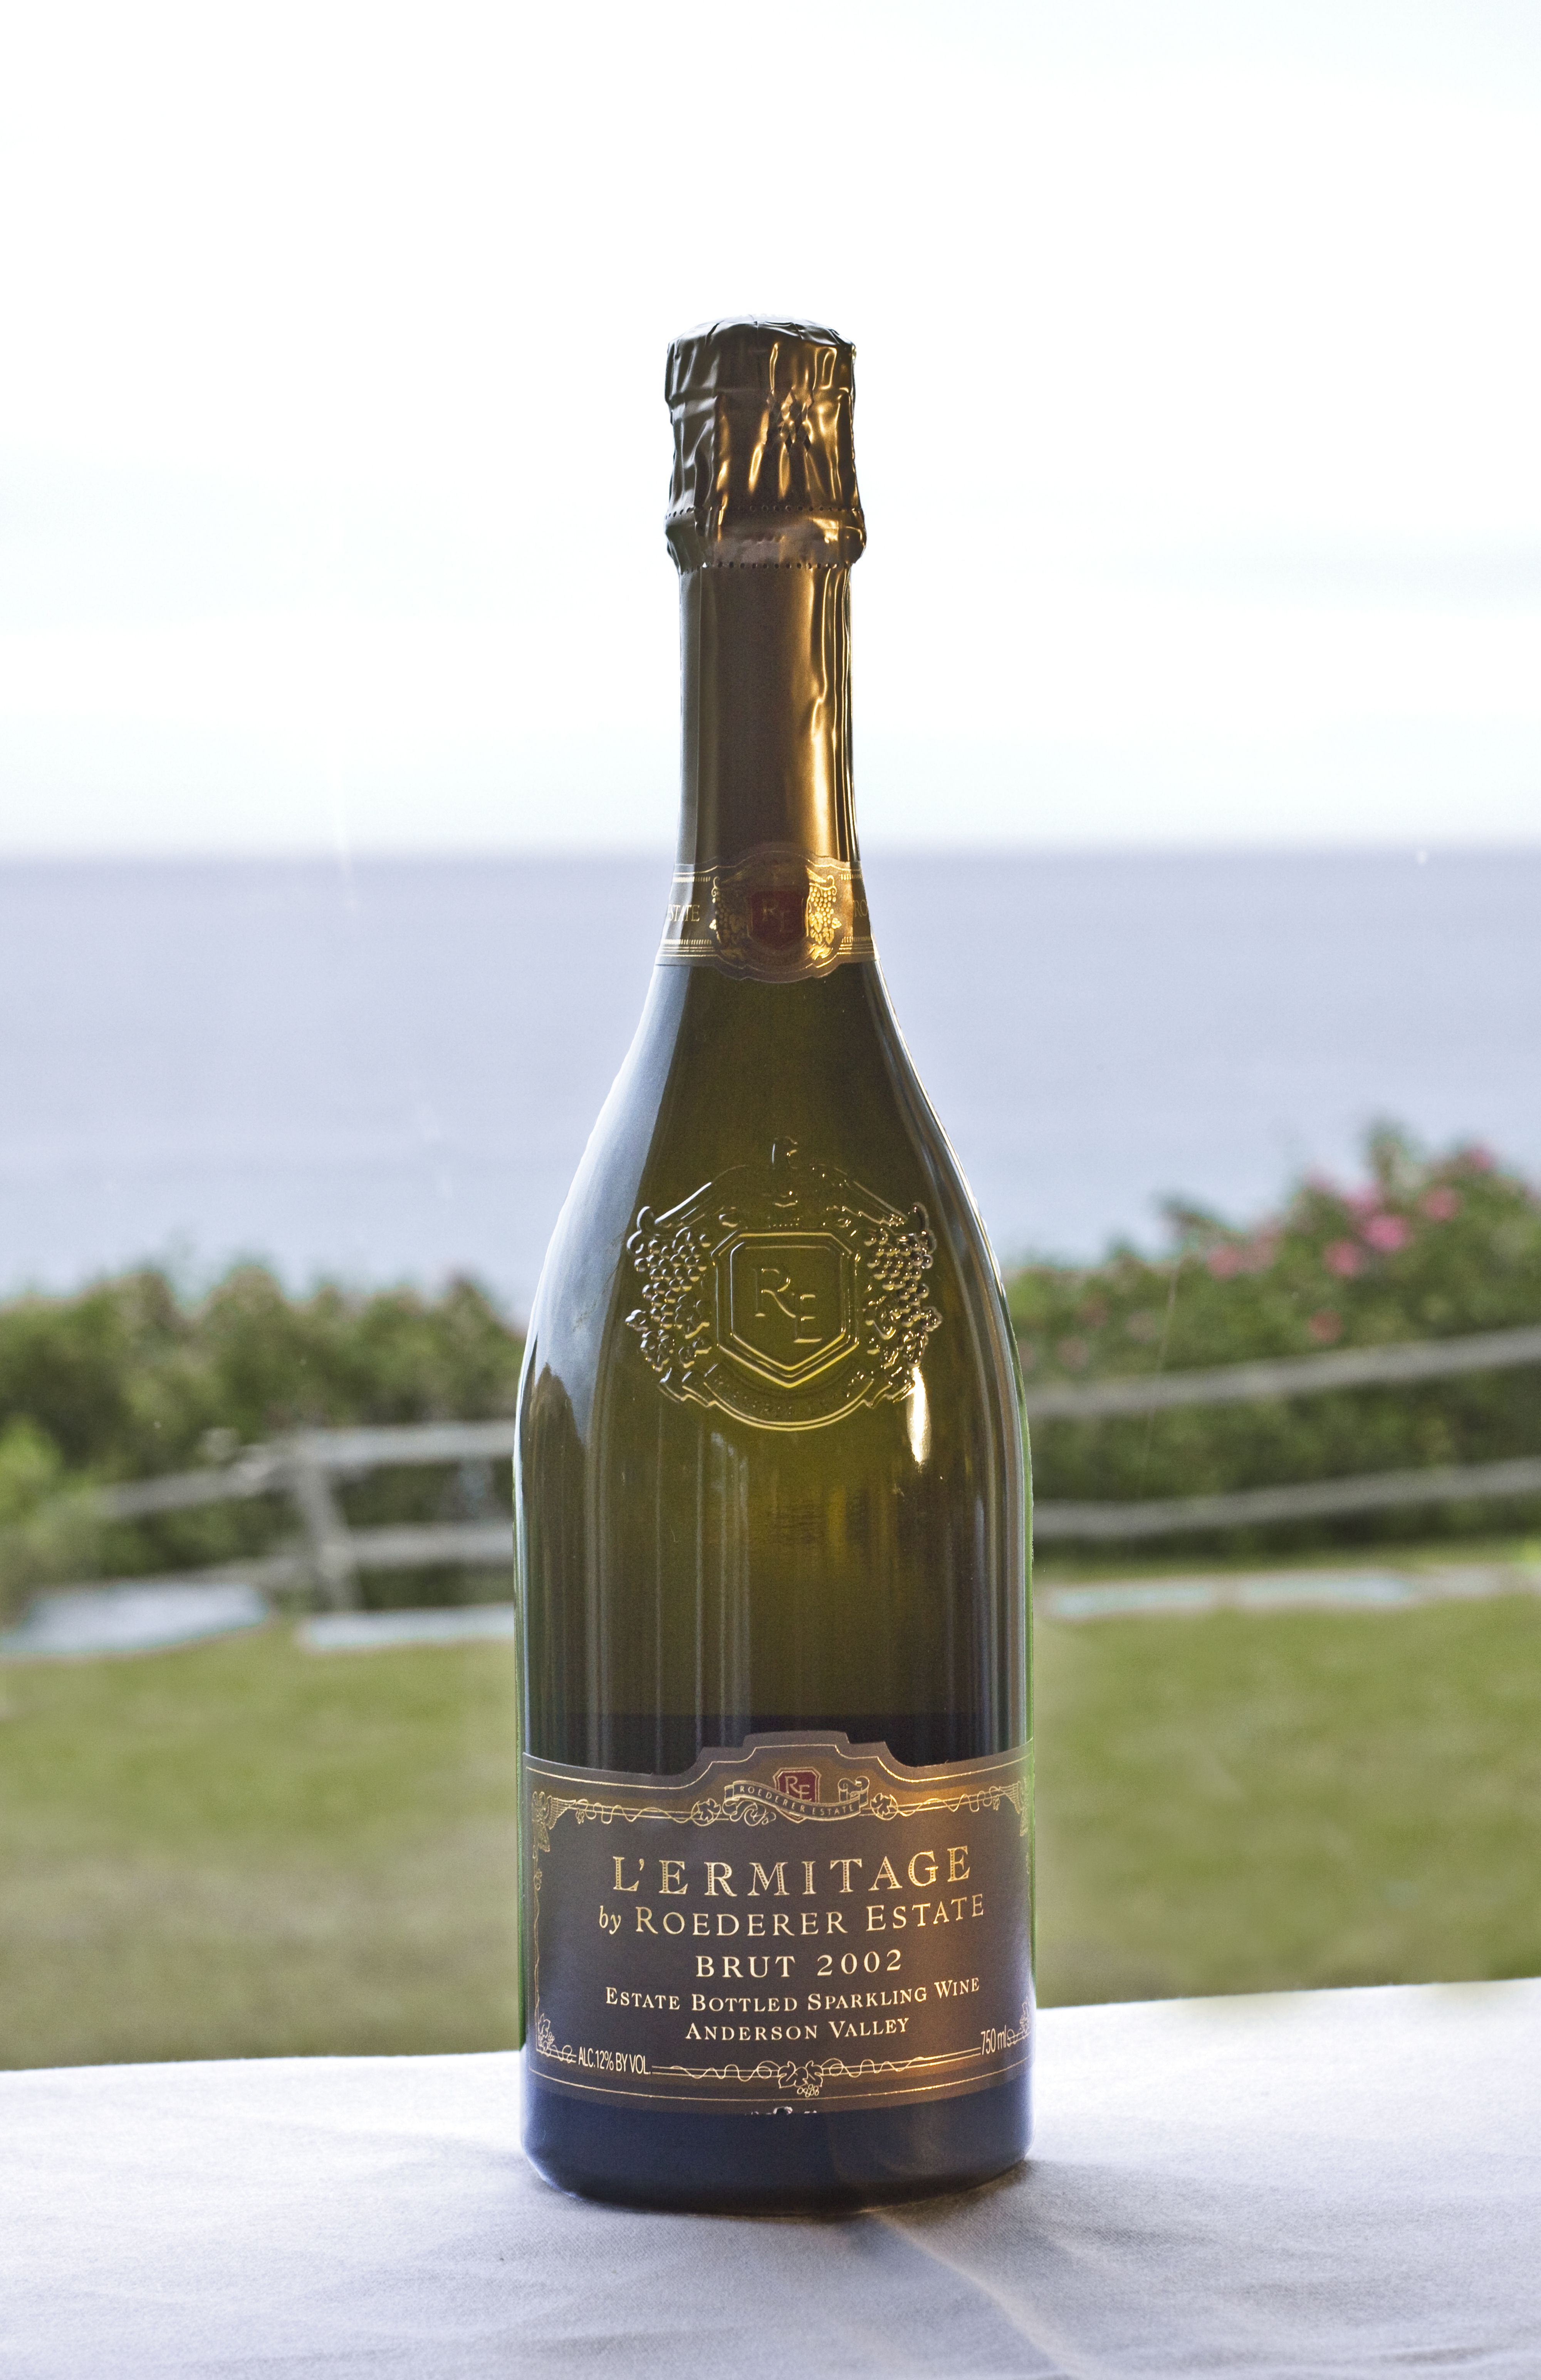 L'ermitage, Roederer Estate, 2002 Anderson Valley Sparkling Wine on Albion River Inn Table 13